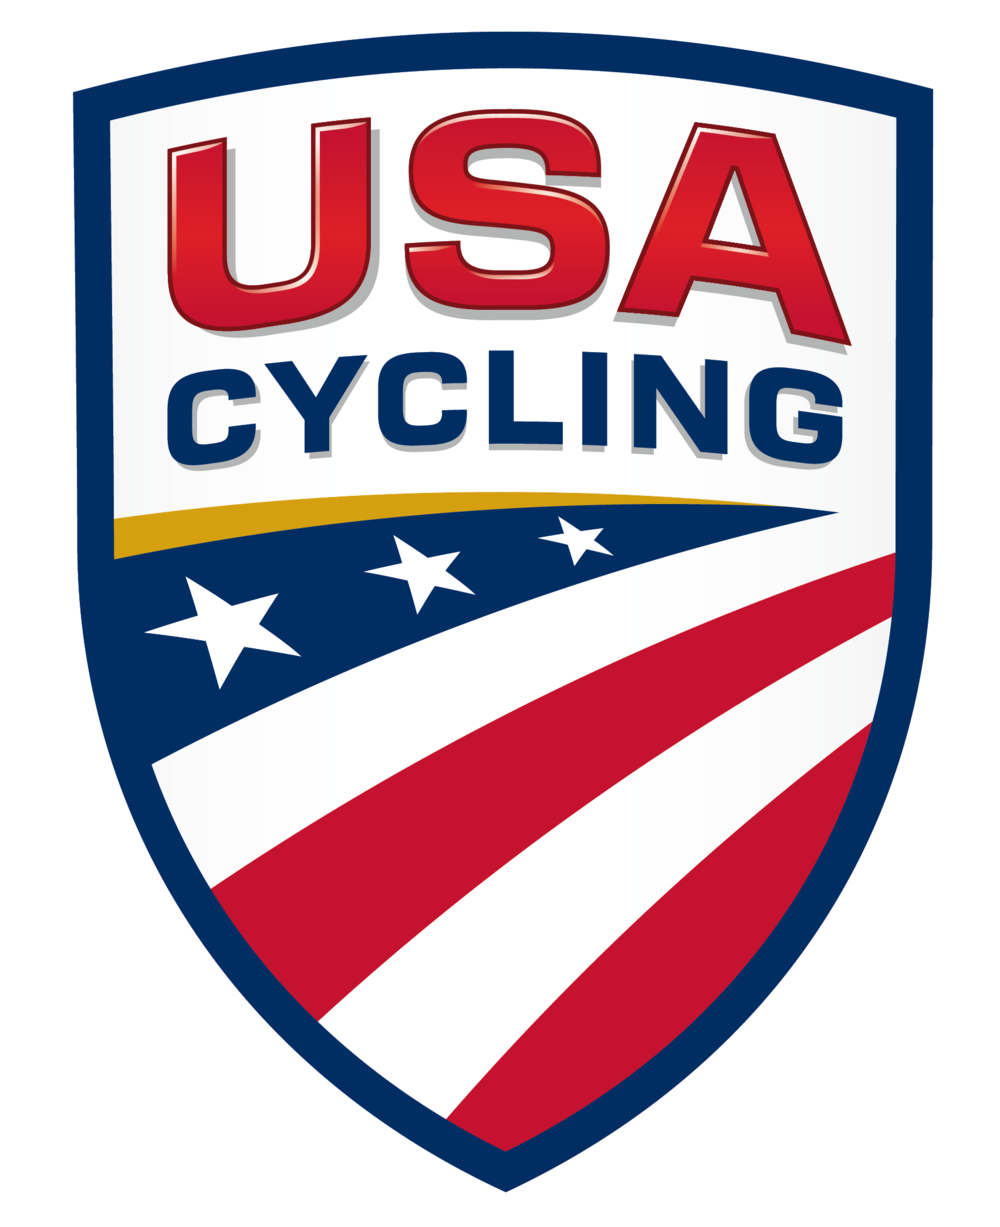 USA_Cycling_FlatStars copy.png